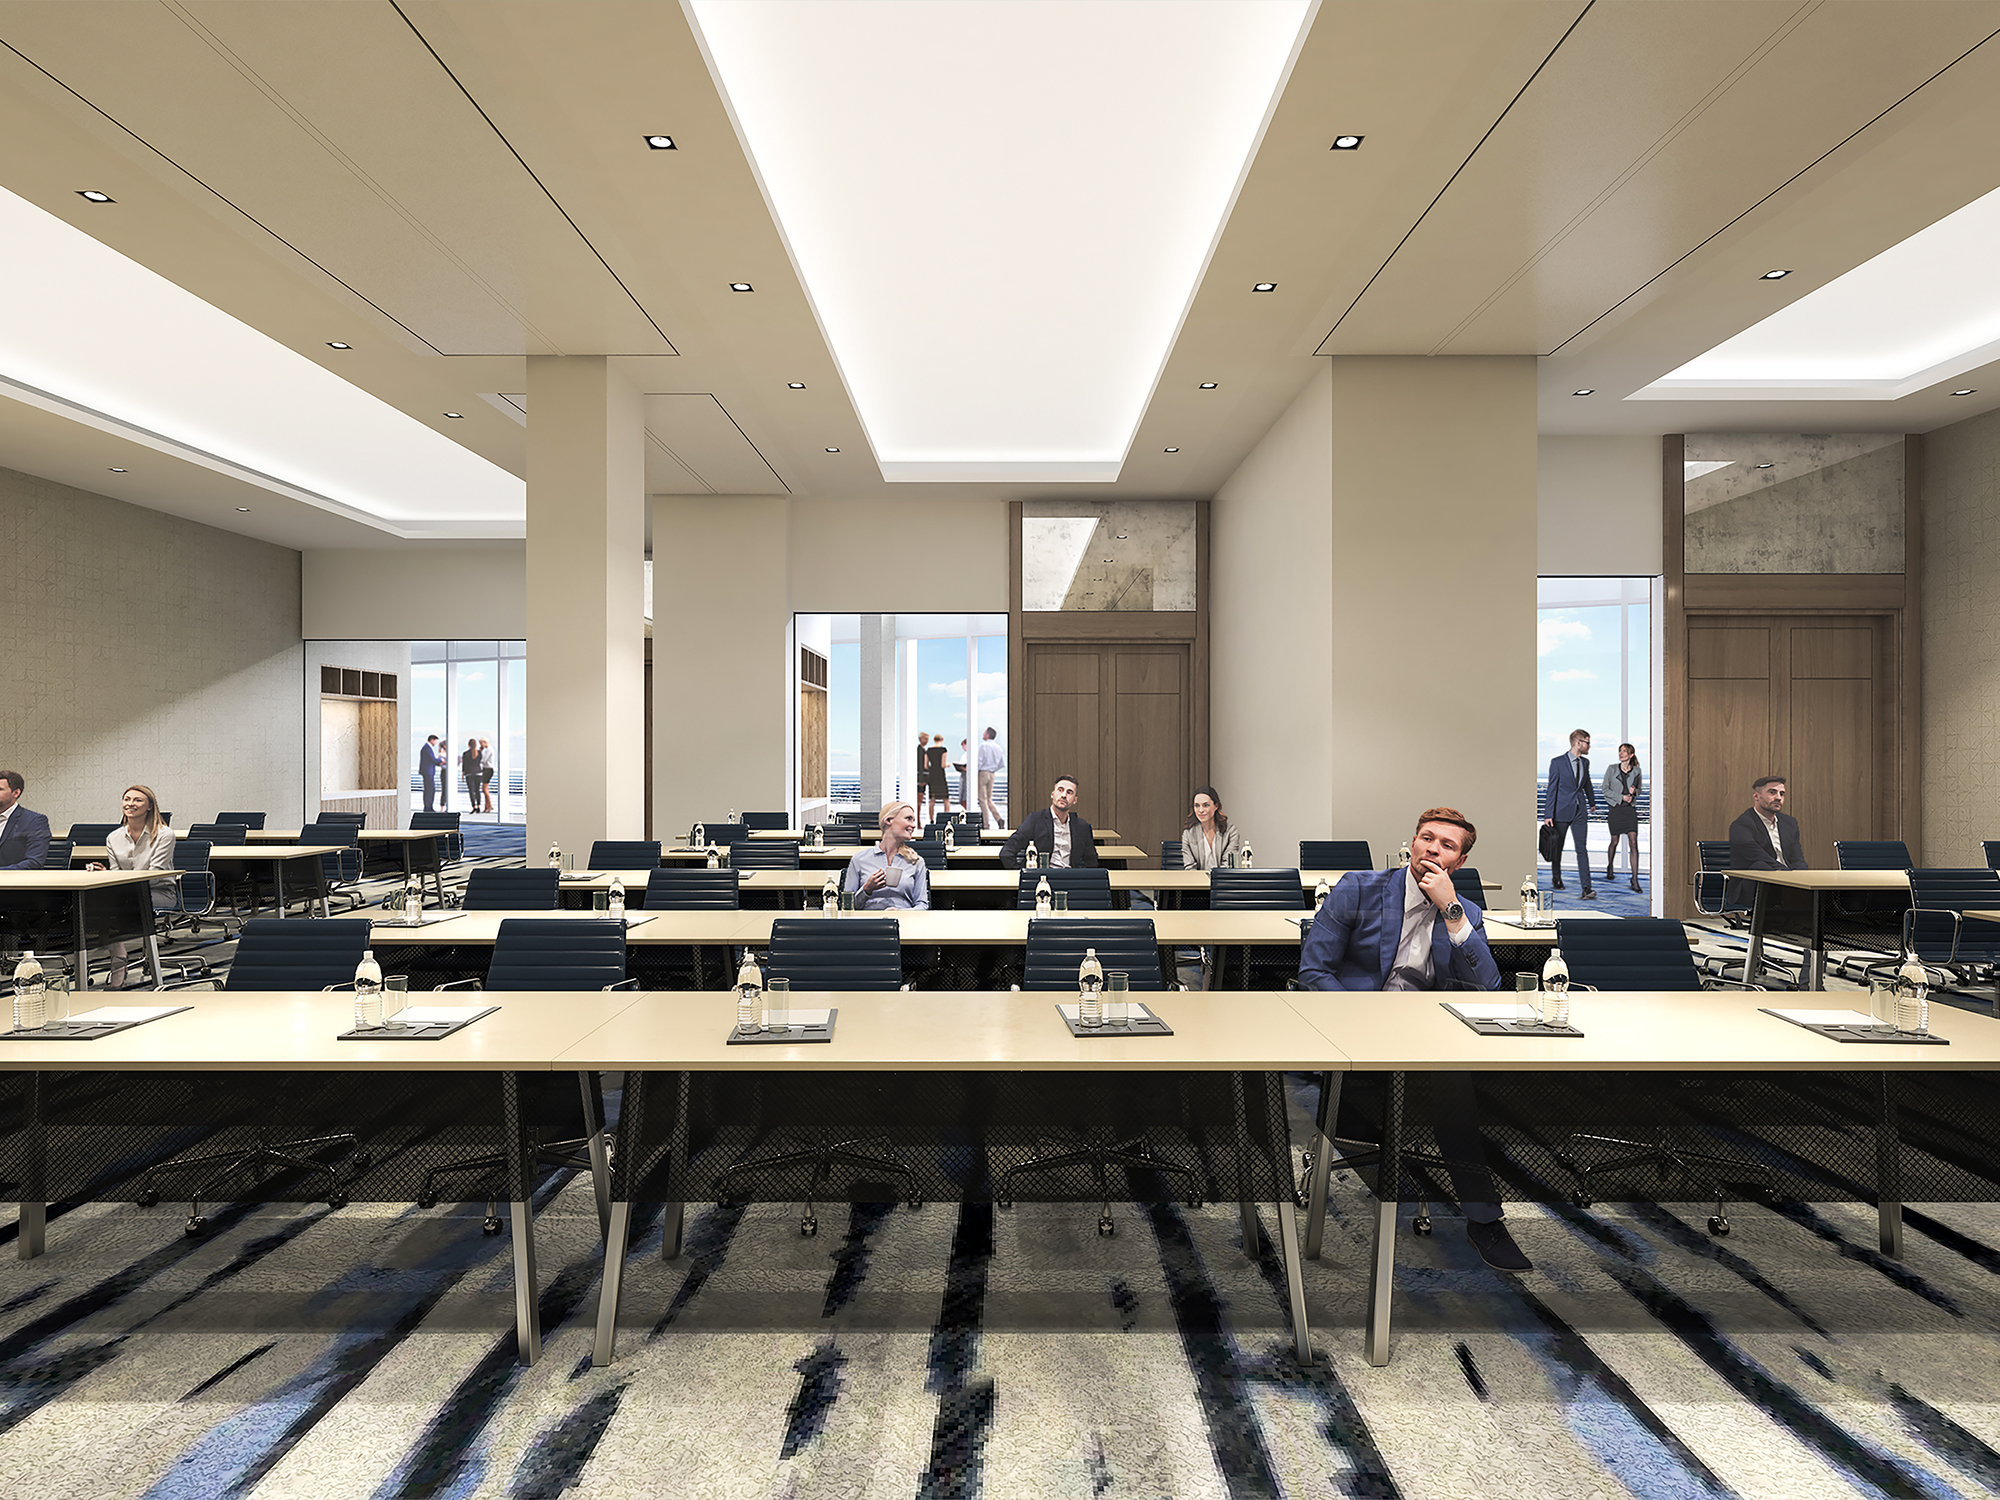 50-Person Conference Center with State-of-the-Art Technology